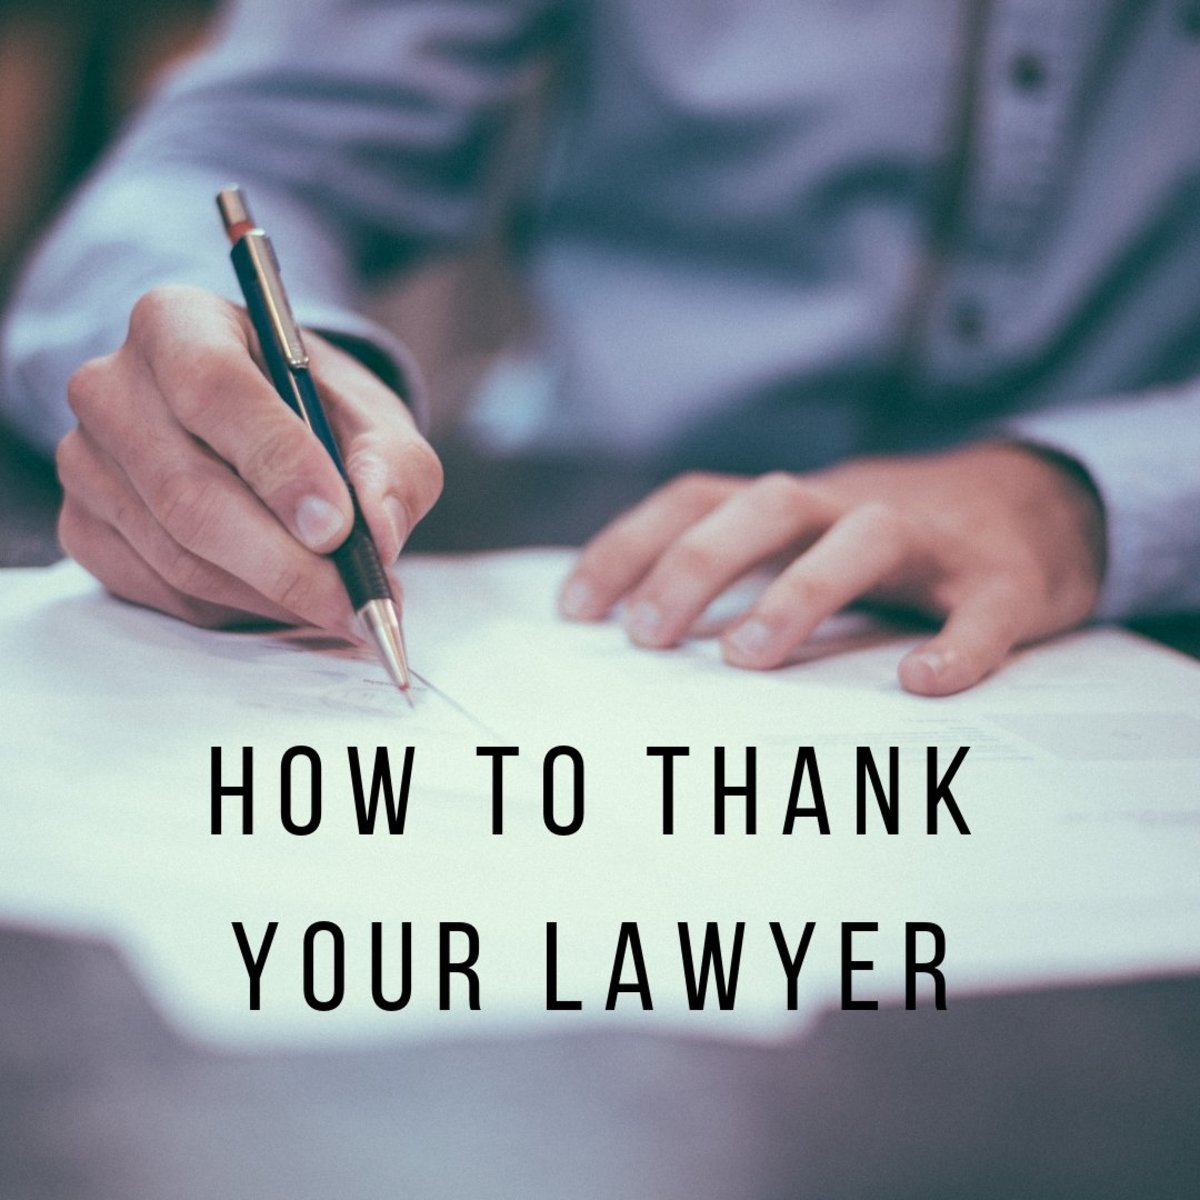 How to Write a Thank-You Letter to a Lawyer